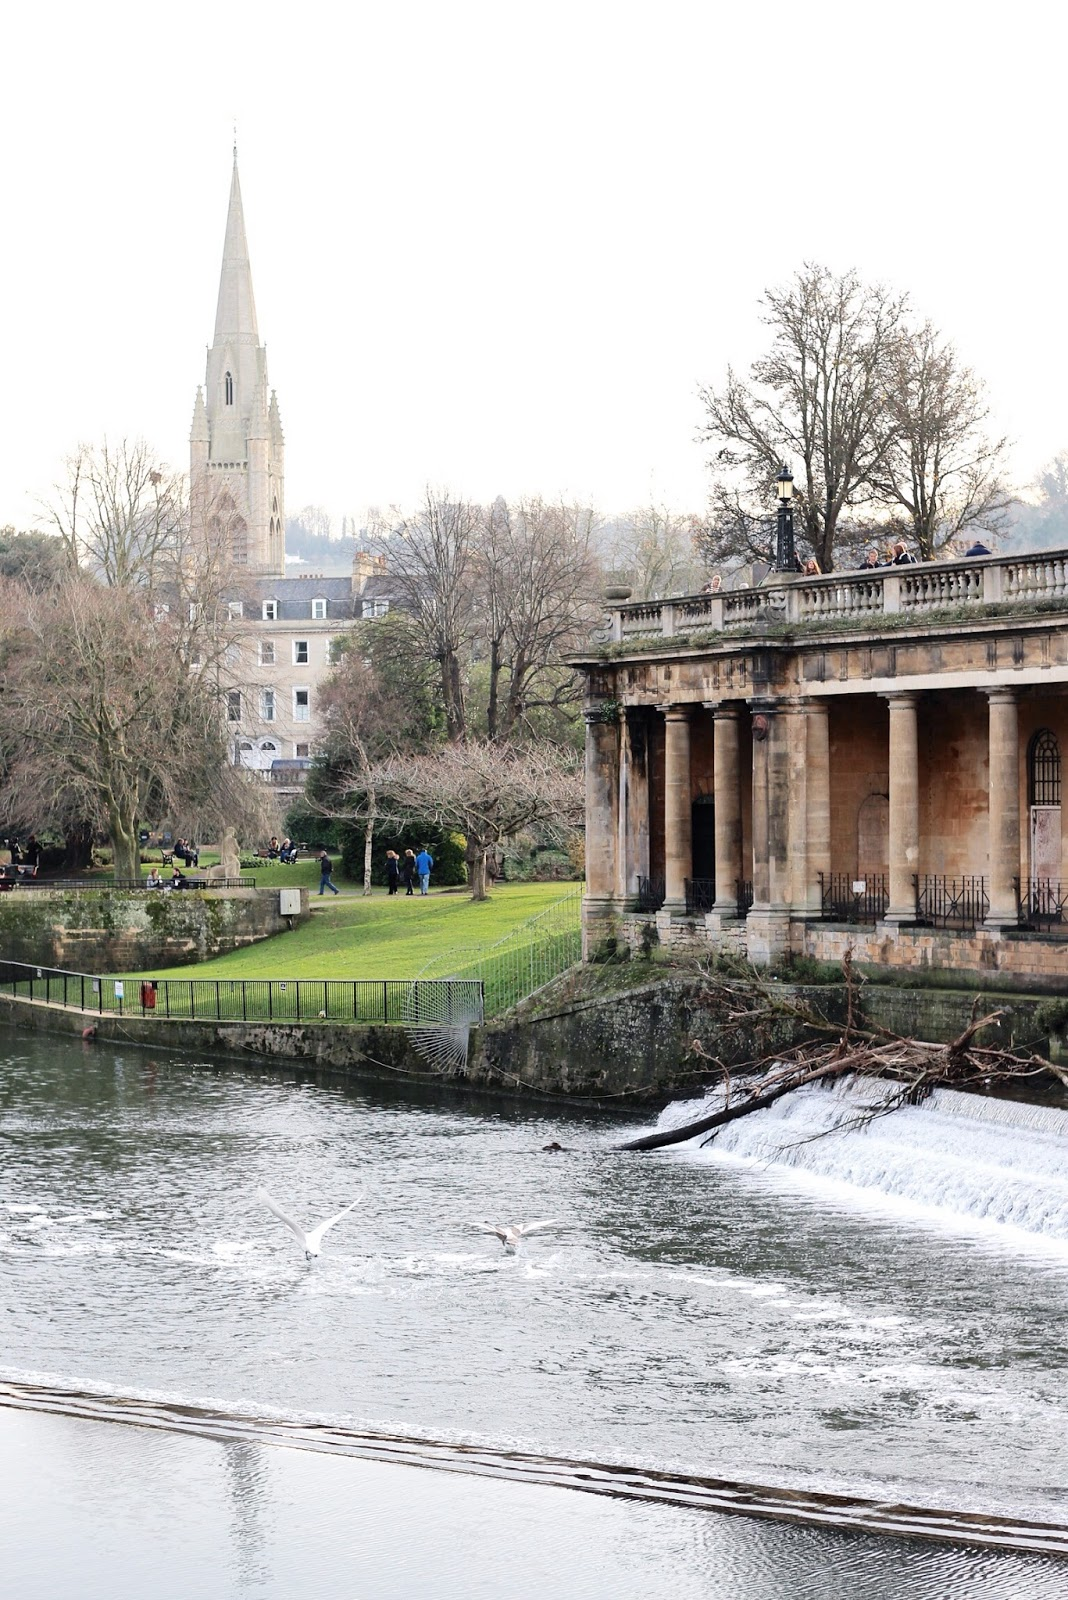 Famous historic English town of Bath